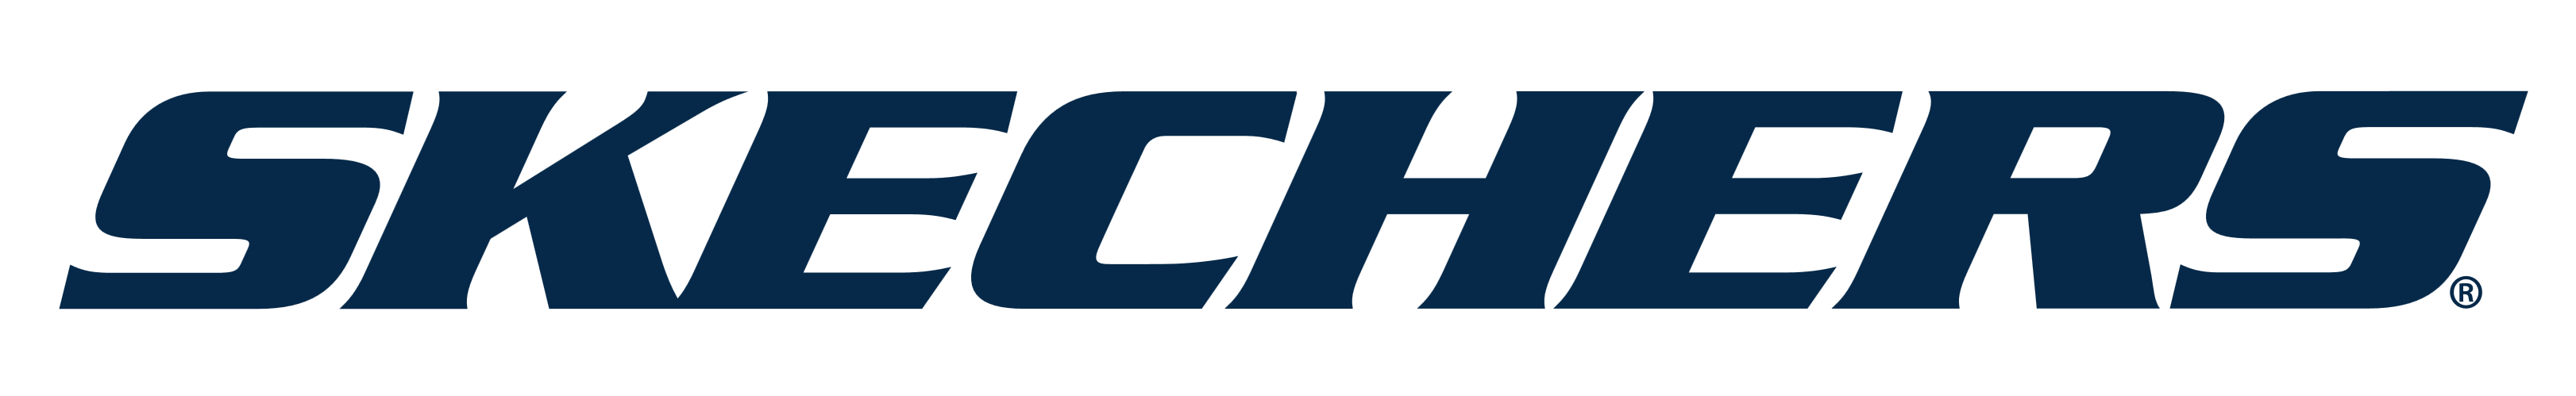 skechers logos download Barcelona Logo Chelsea Logo